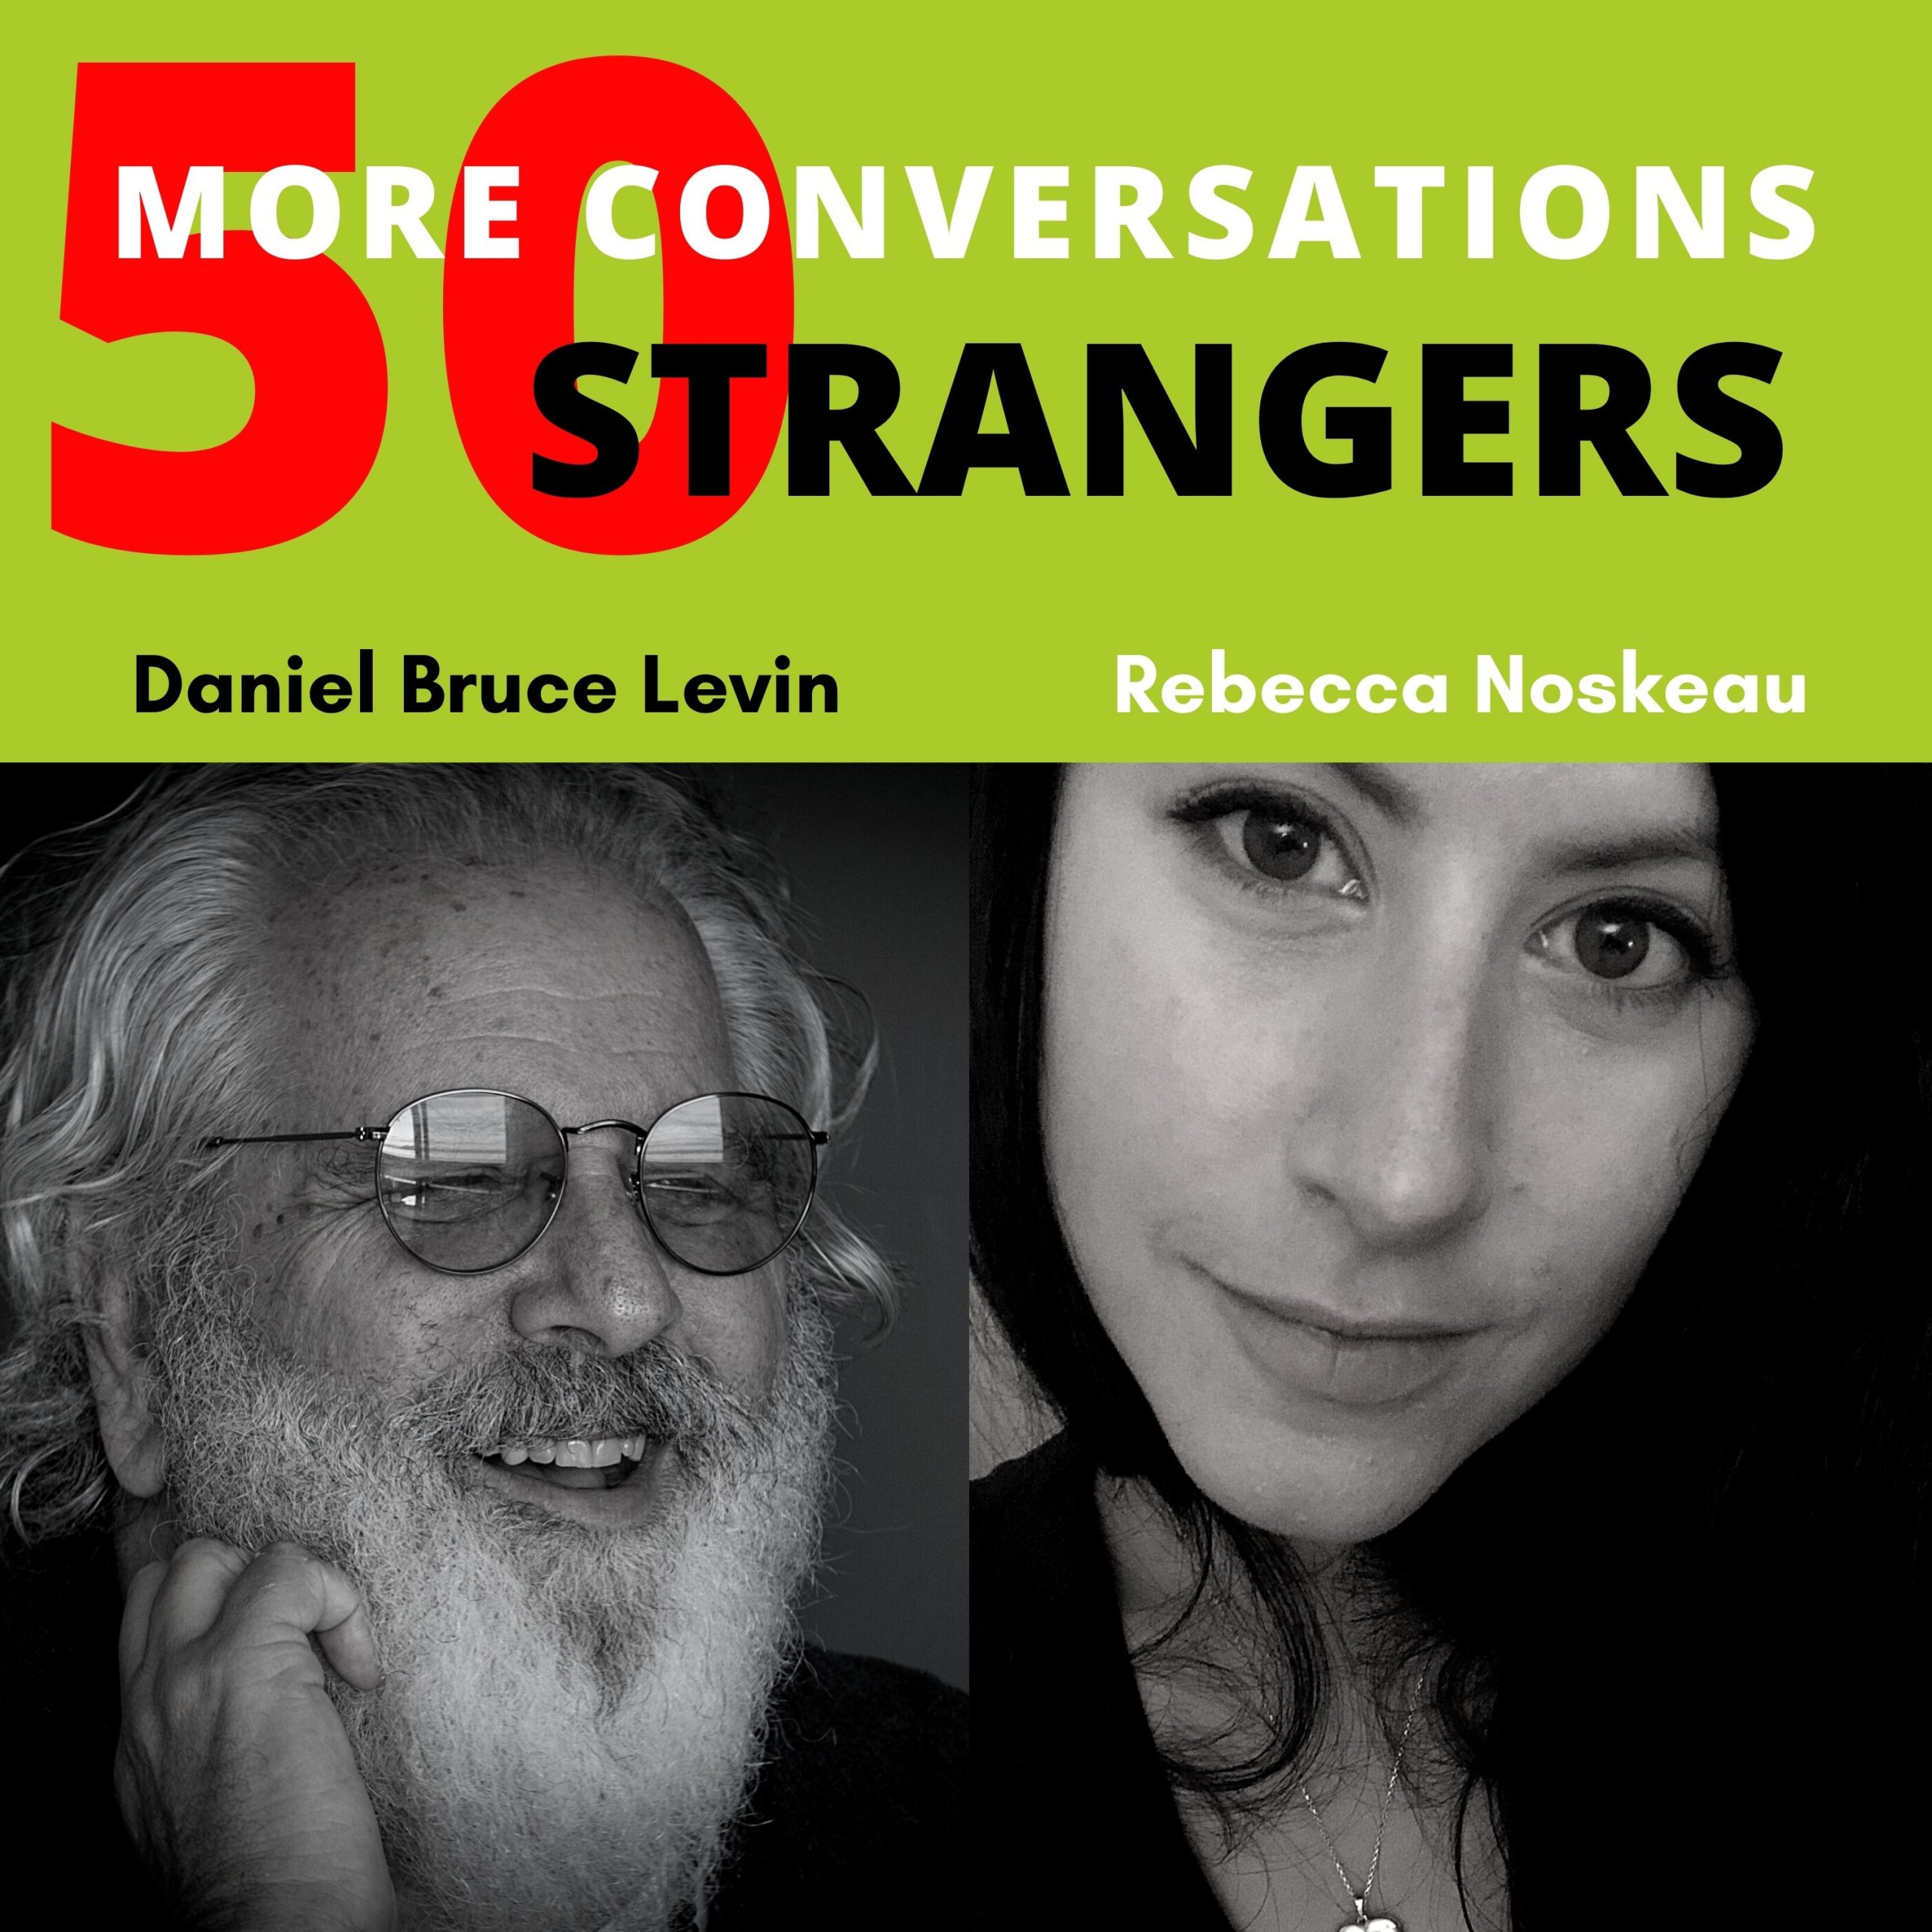 50 More Conversations with 50 More Strangers with Rebecca Noskeau